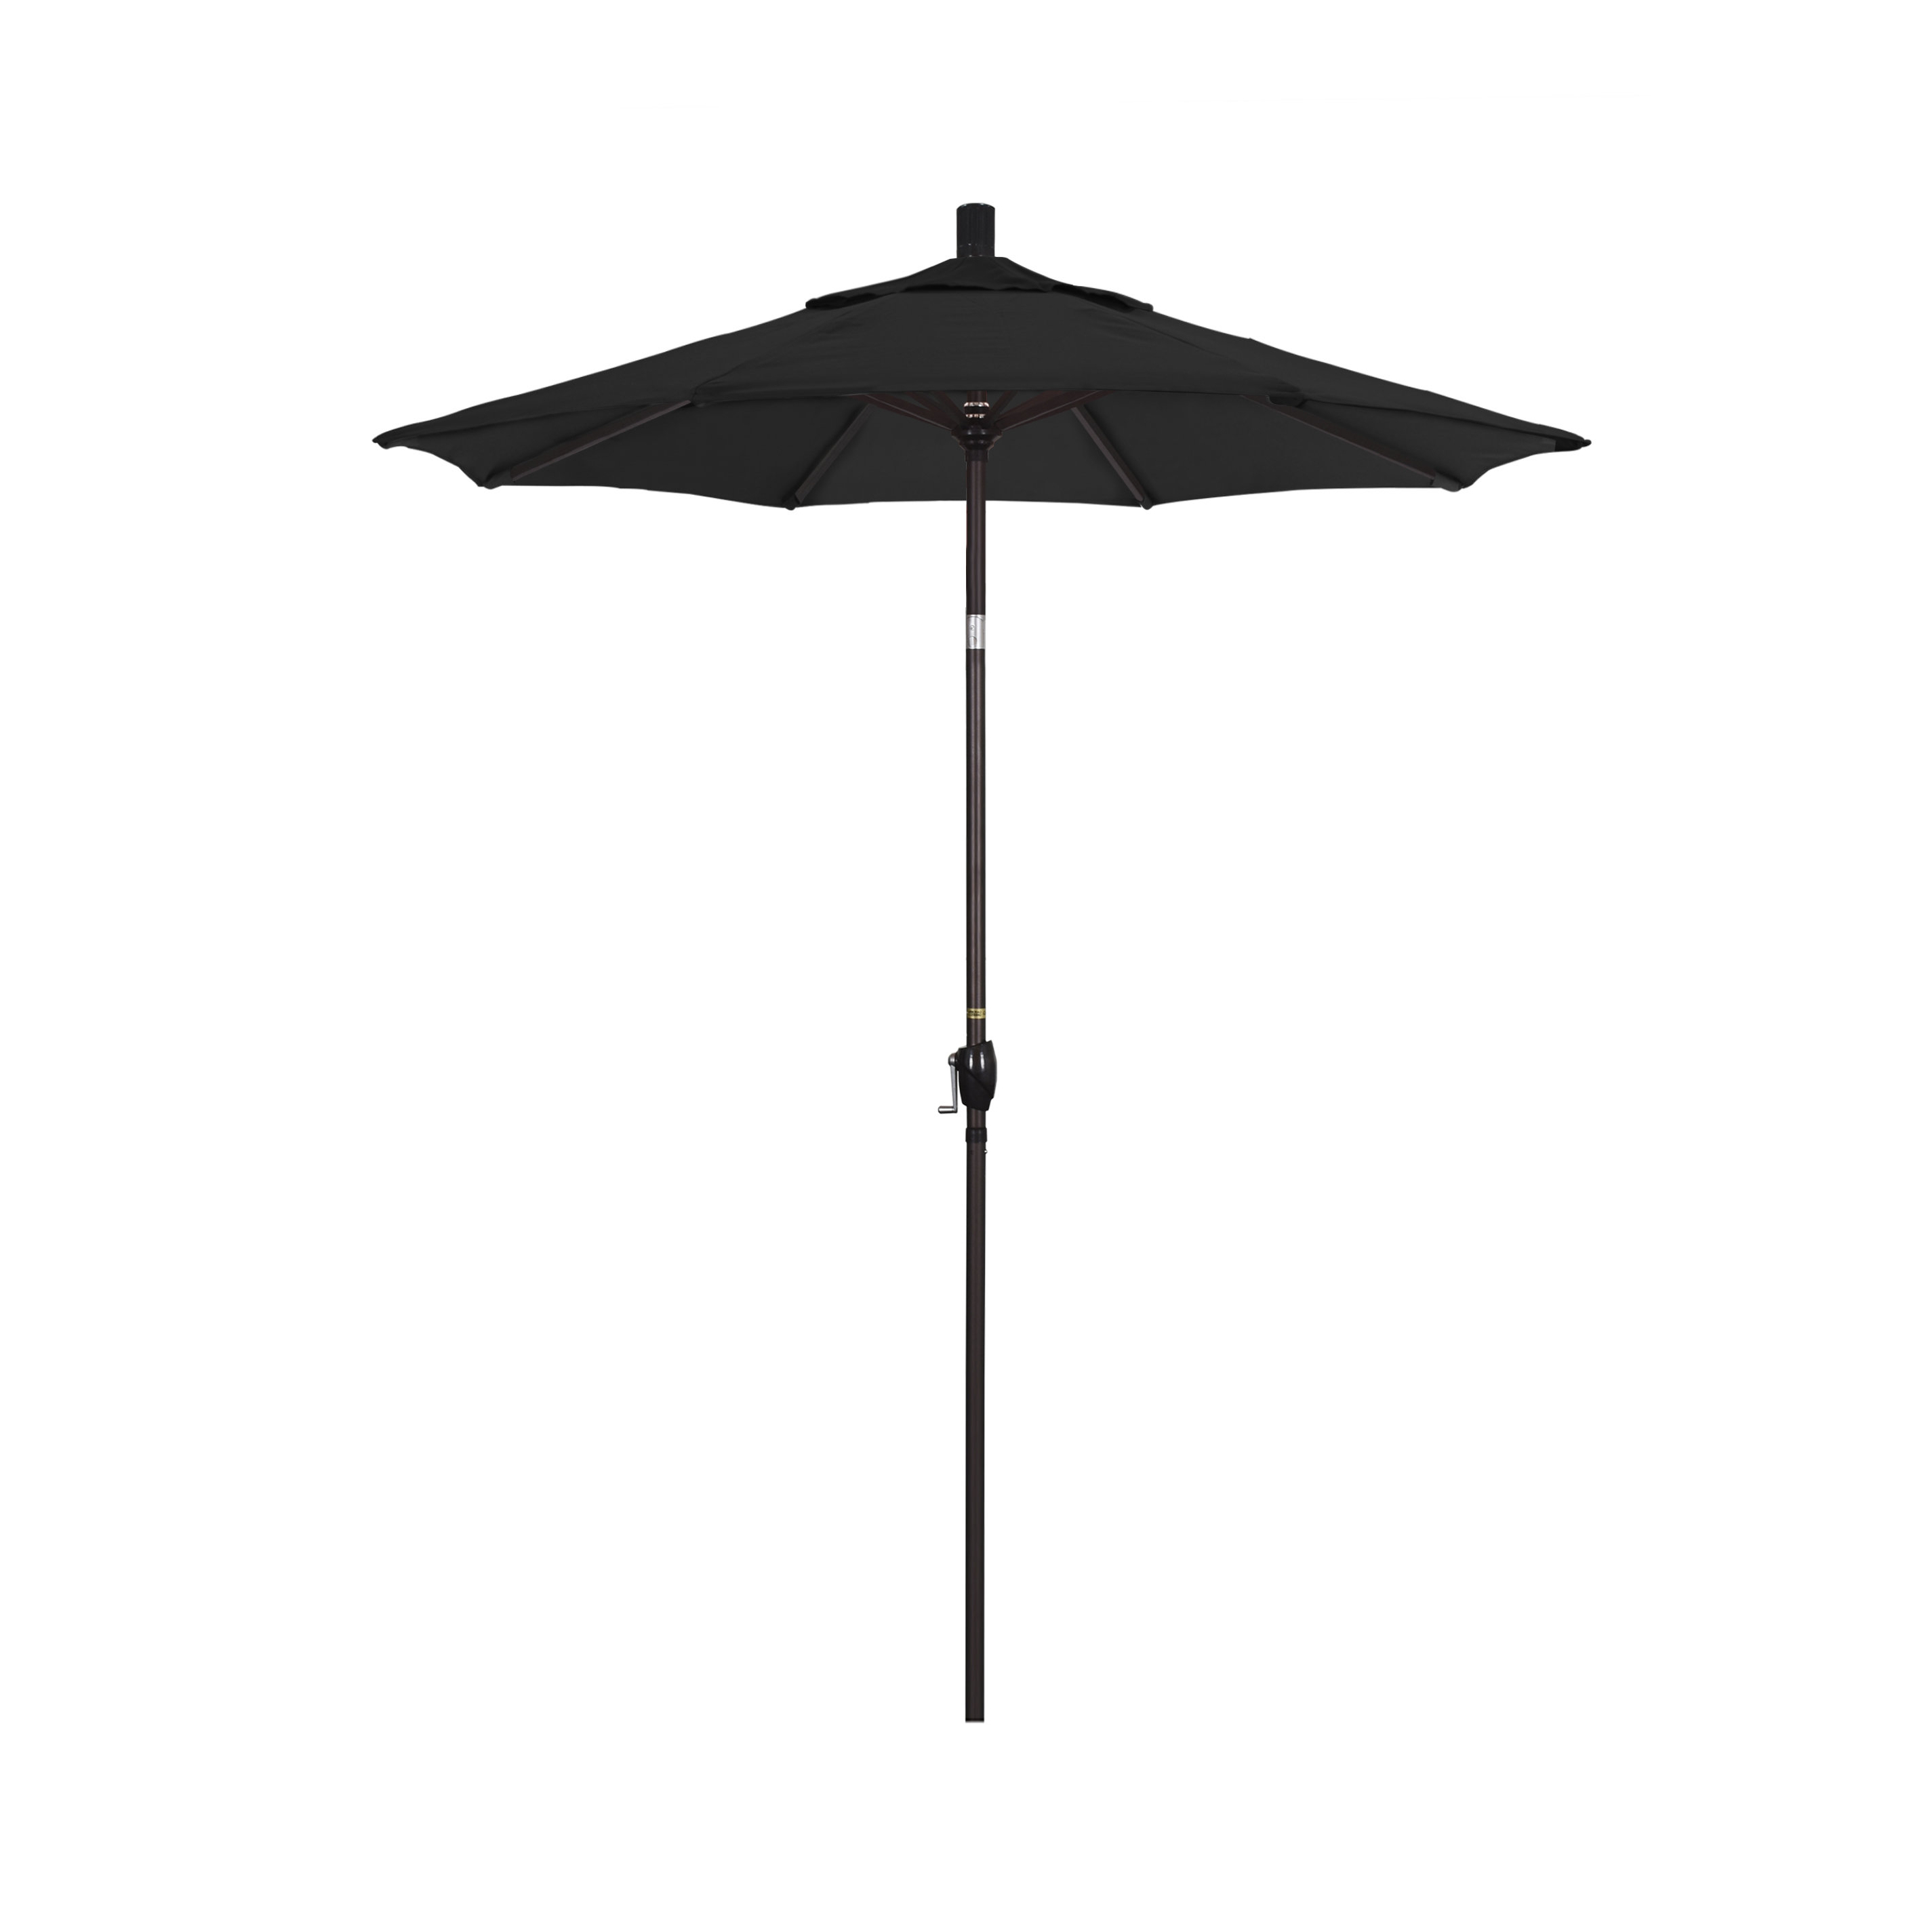 Popular Caravelle Square Market Sunbrella Umbrellas Within Wallach 6' Market Sunbrella Umbrella (View 16 of 20)